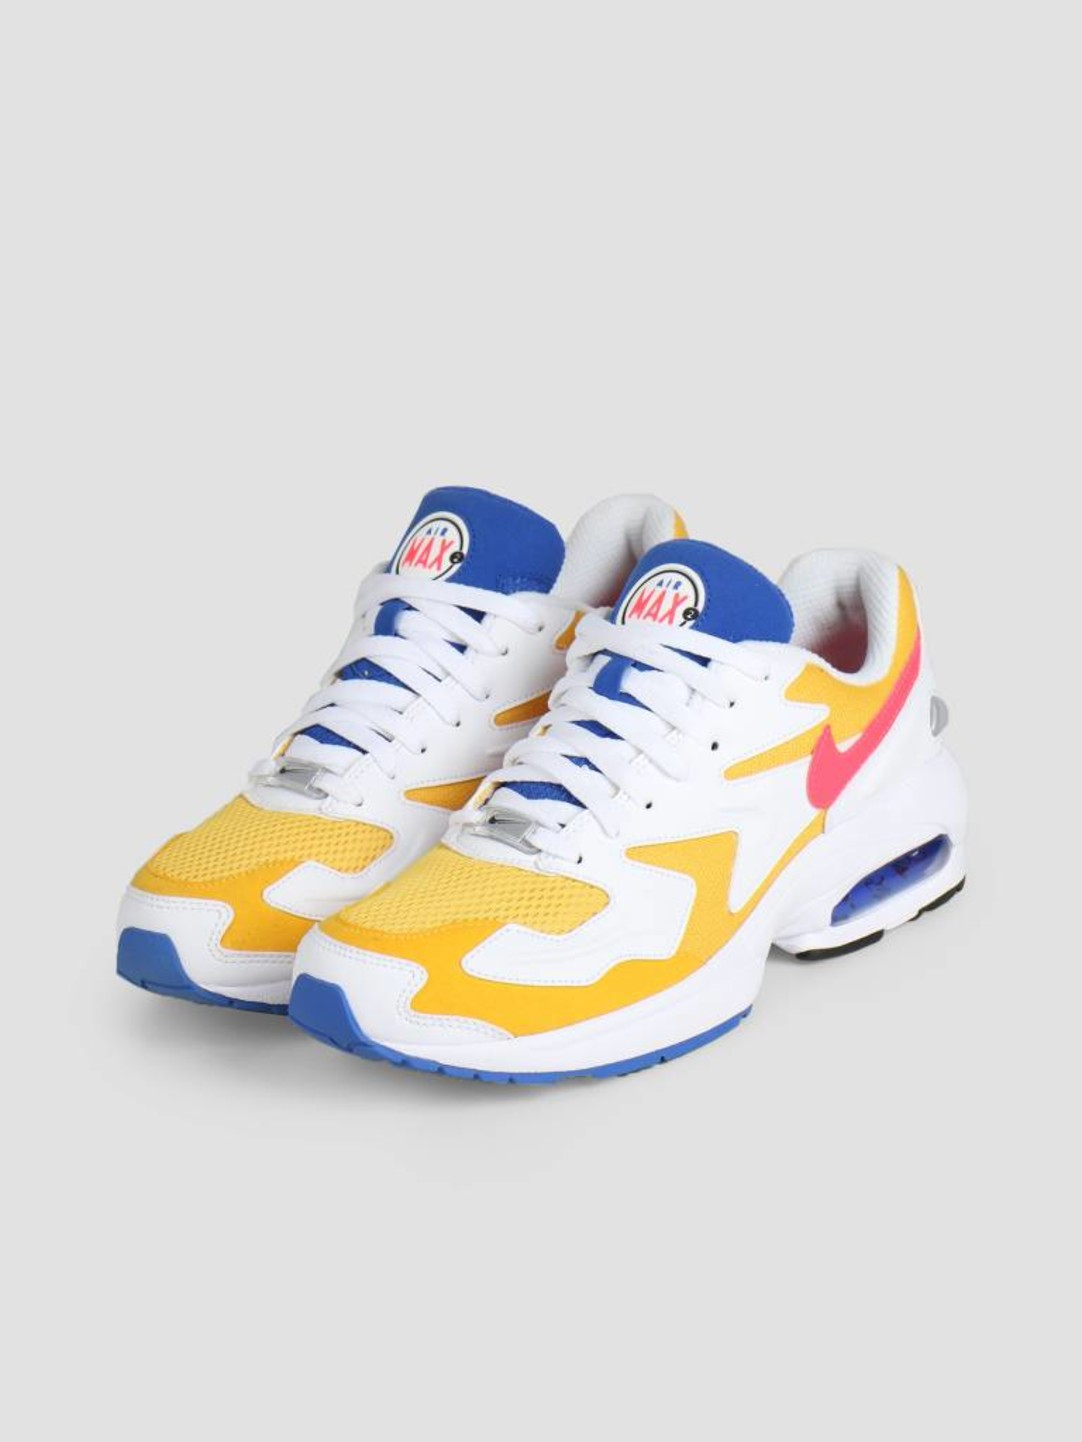 Nike Nike Air Max2 Light University Gold Flash Crimson-Racer Blue Ao1741-700